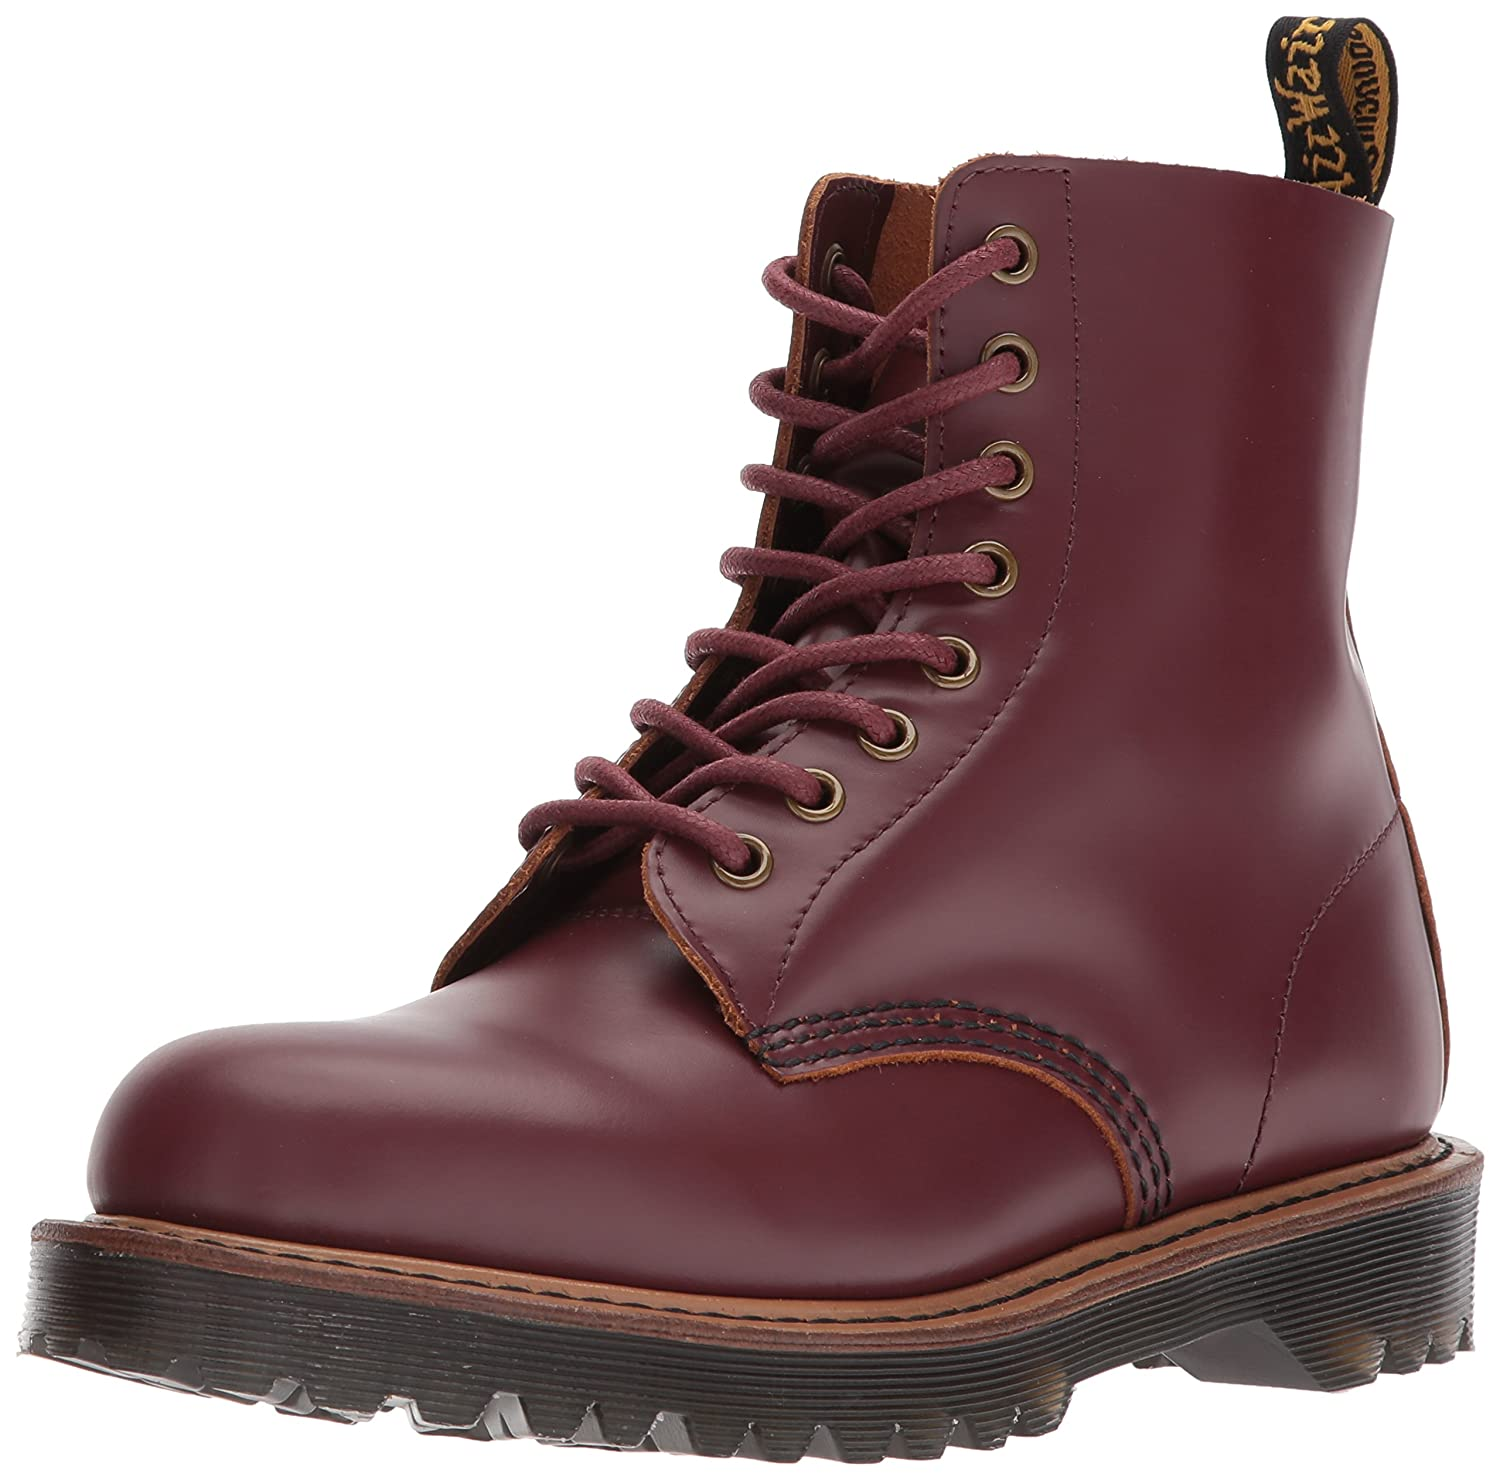 Dr. Martens Women's Pascal II Fashion Boot B01N6LSI2L 5 Medium UK (7 US)|Oxblood Vintage Smooth